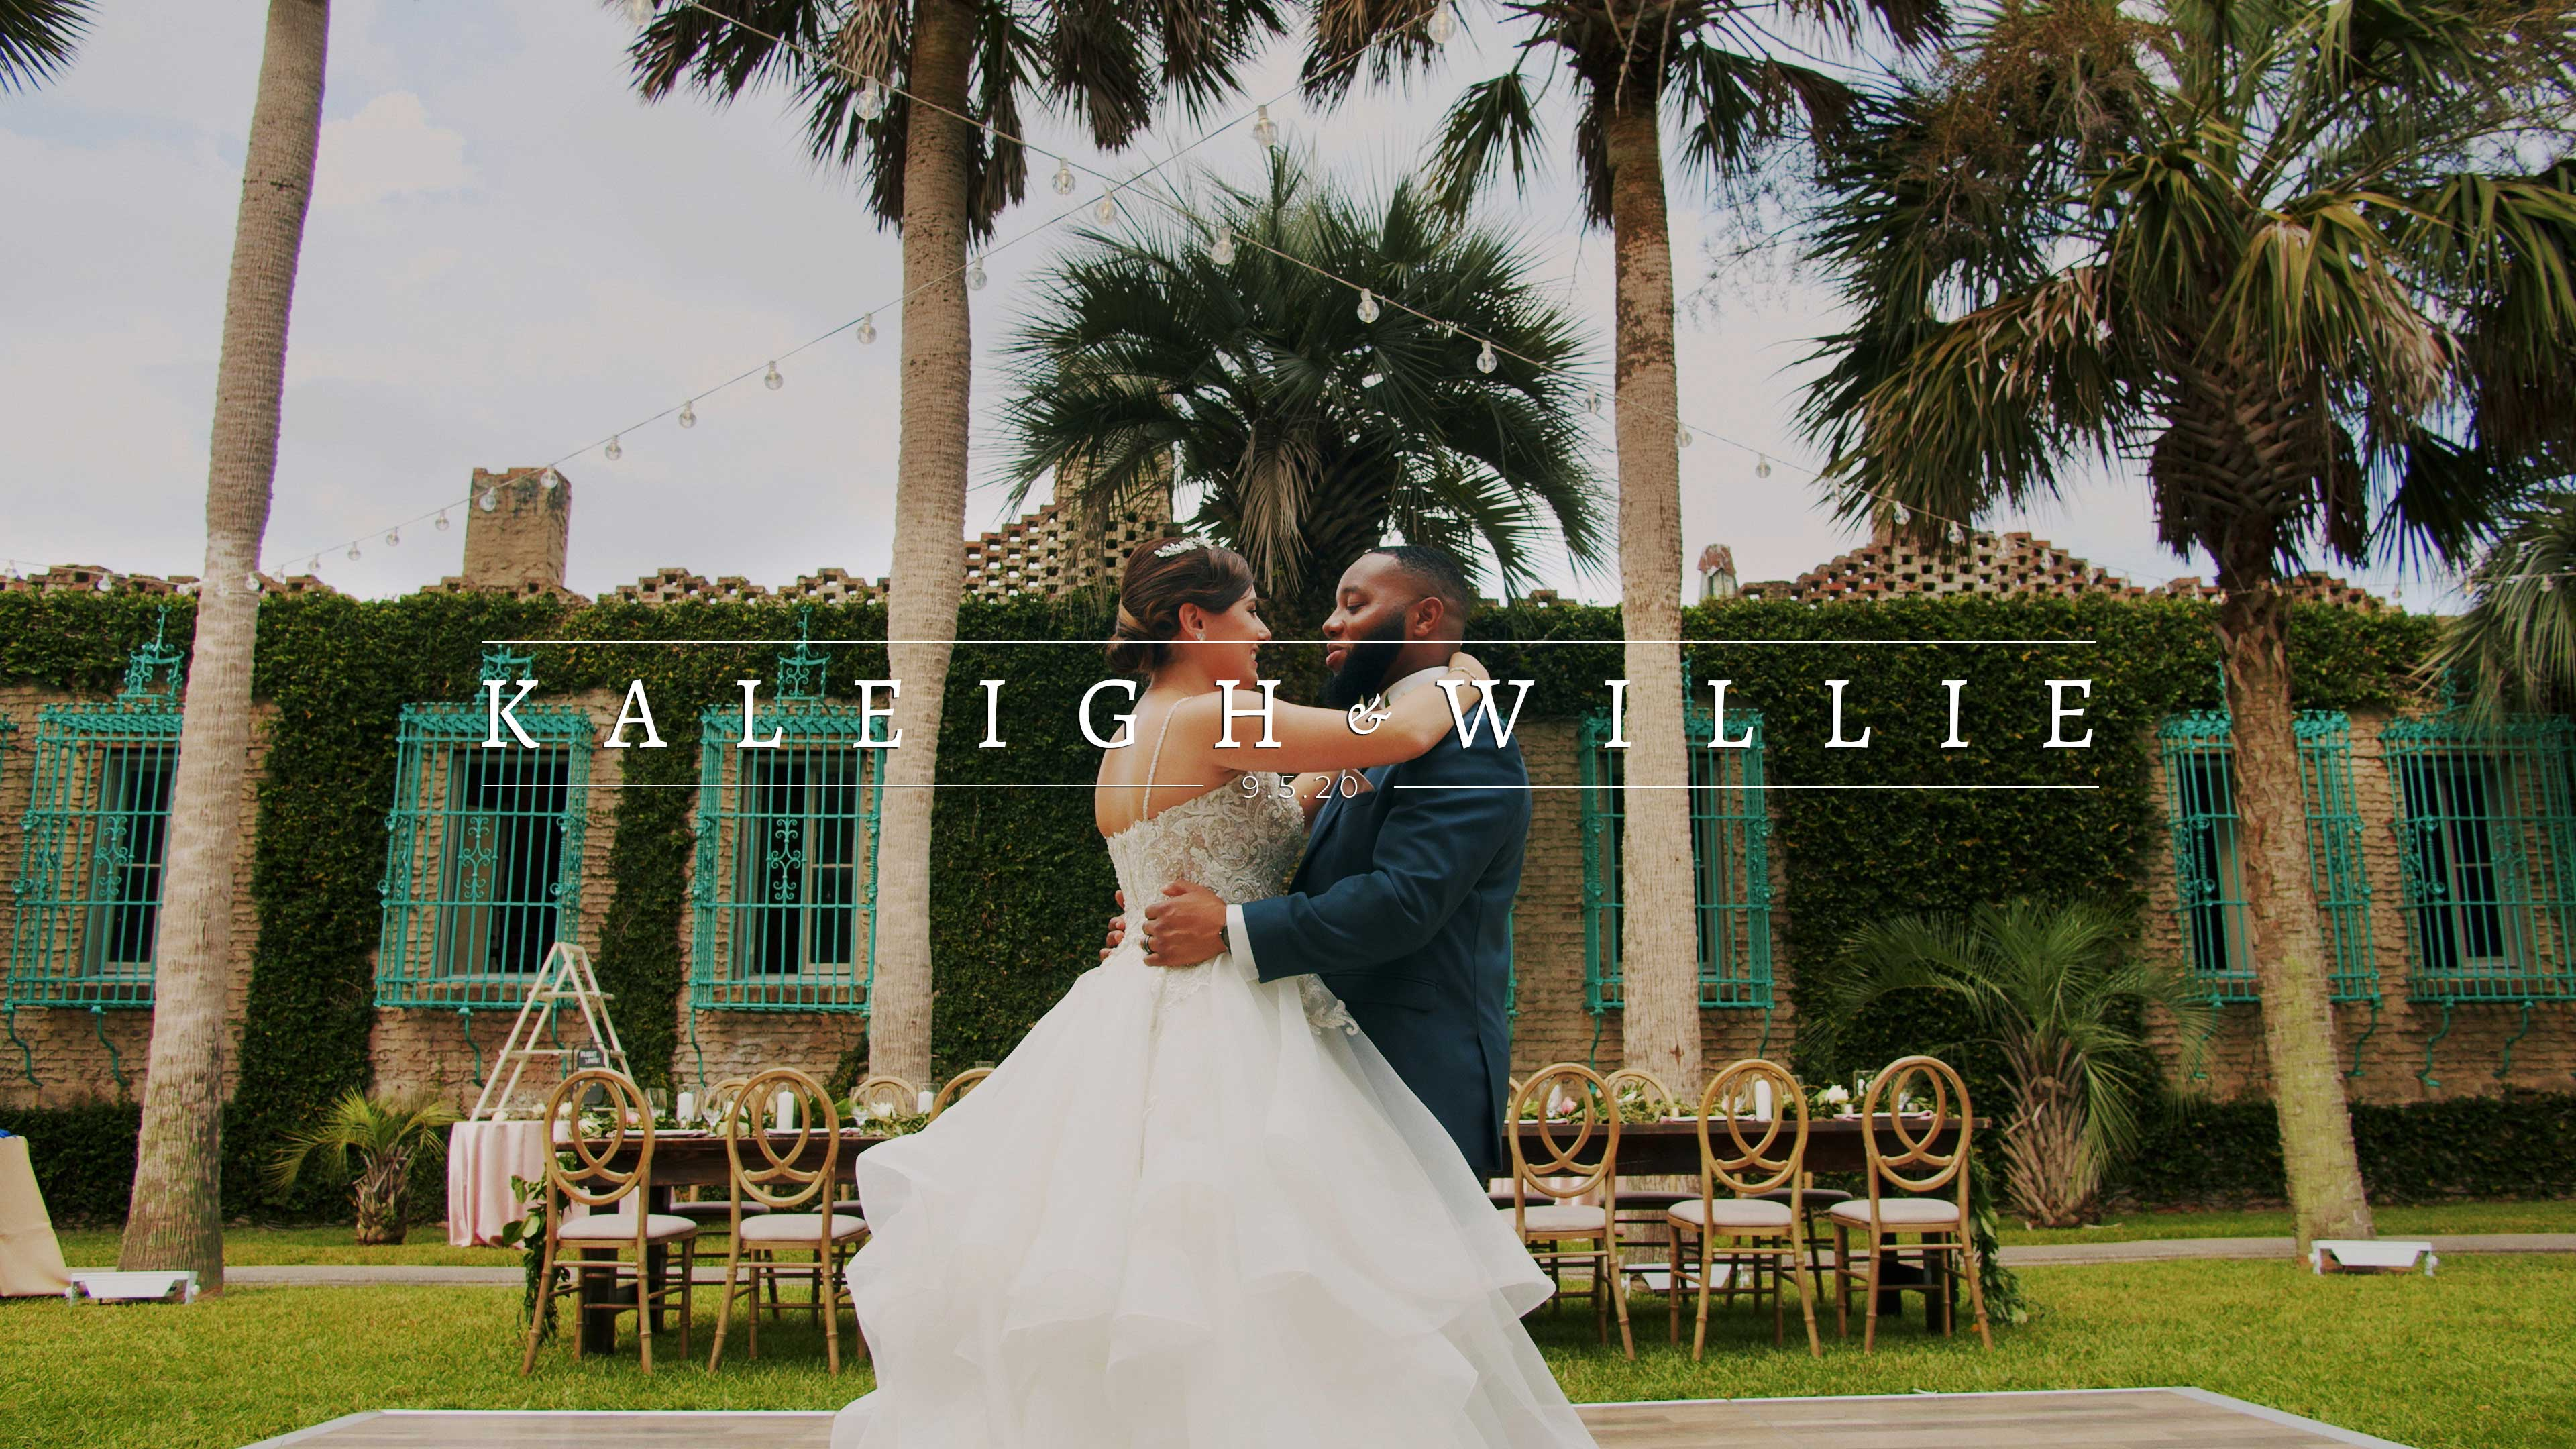 Kaleigh + Willie | Murrells Inlet, South Carolina | Atalaya Castle